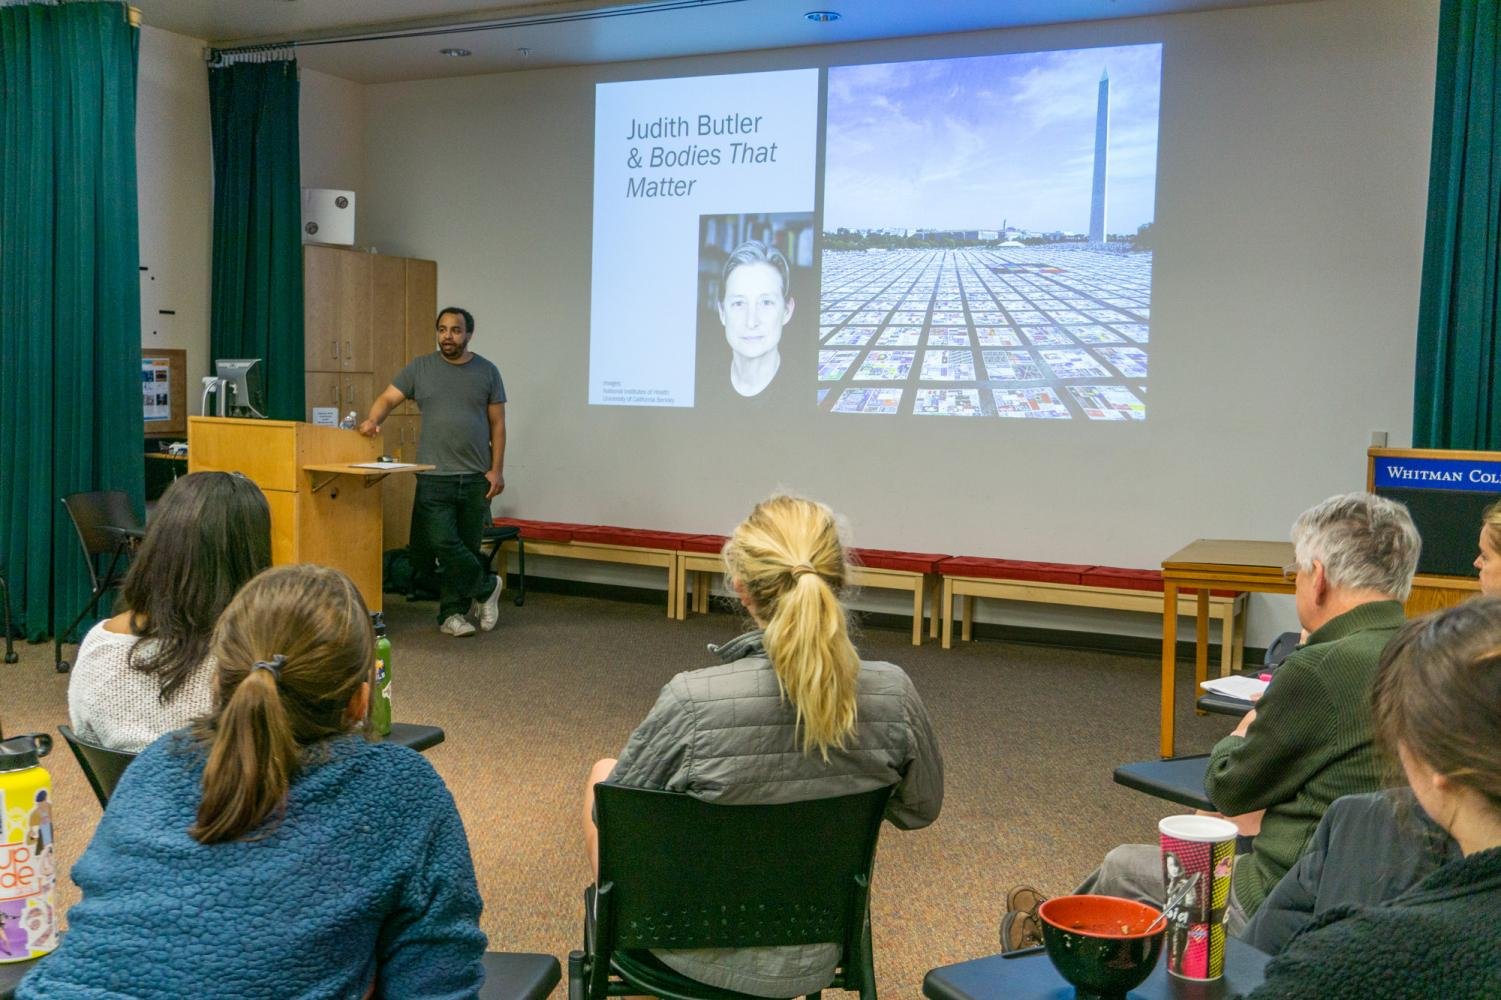 Dr. James Garrison graduated from Whitman in 2004 and returned this past week to speak to the community about the meaning of the black body in our current sociopolitical climate.